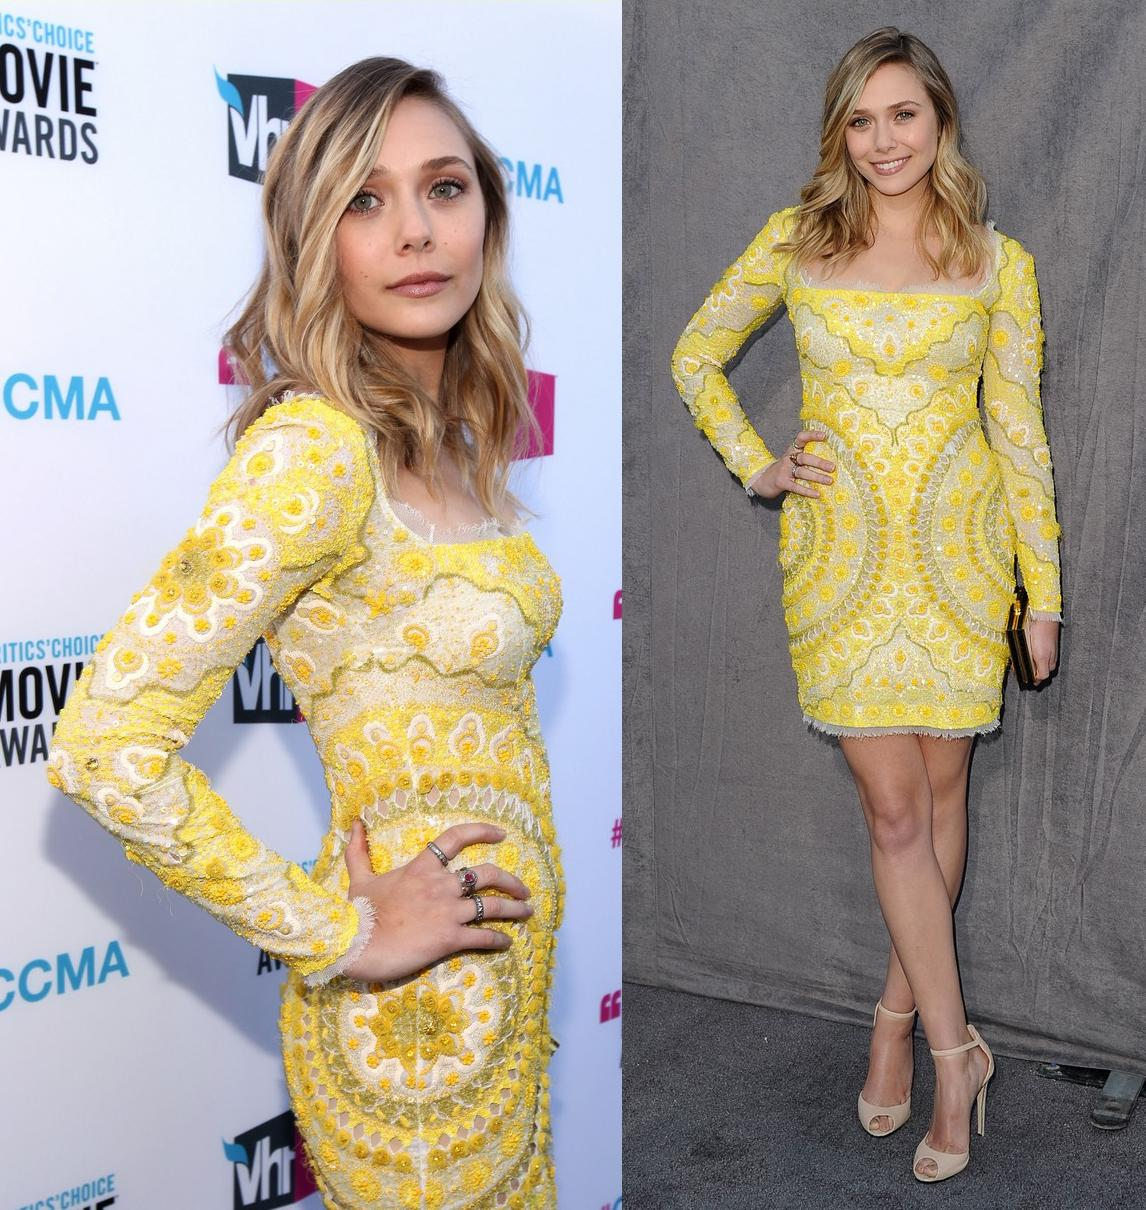 http://4.bp.blogspot.com/-PZpQ_DMPH7I/TxCo54OUzbI/AAAAAAAAEIA/m84AlBRsLG0/s1600/Elizabeth+Olsen+In+Emilio+Pucci+-+2012+Critics%2527+Choice+Movie+Awards.jpg